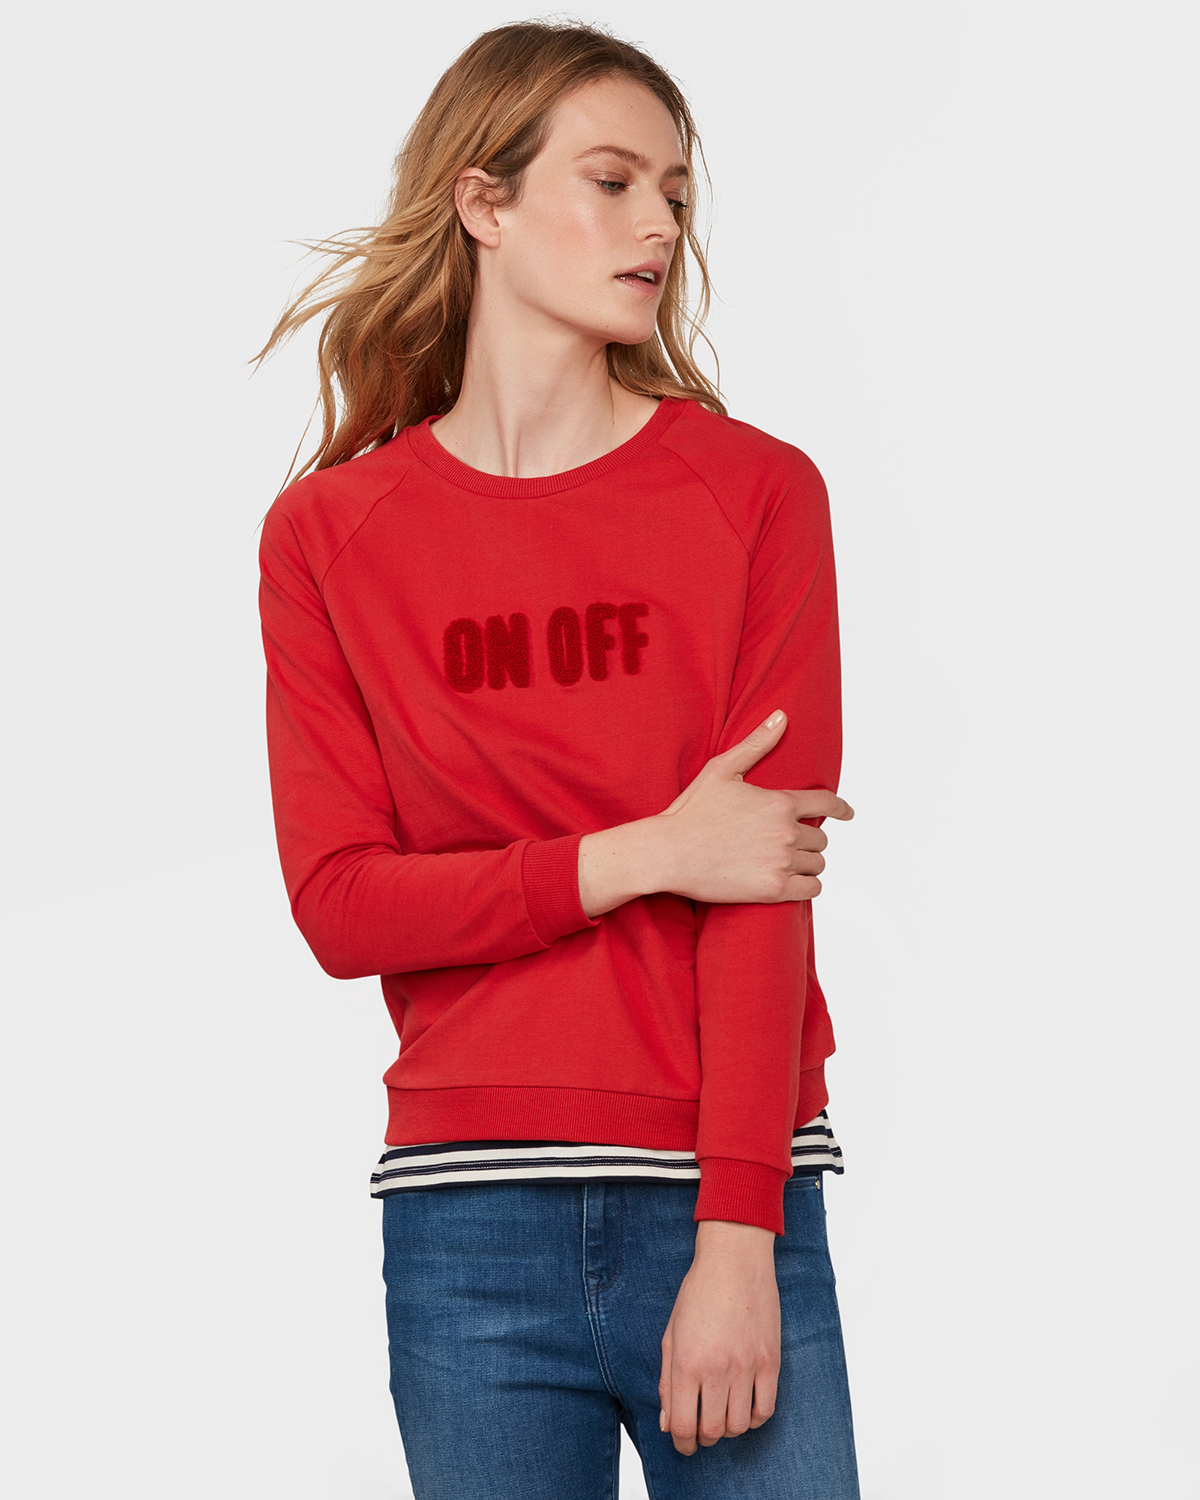 Trui Rood Dames.Dames On Off Sweater 79695589 We Fashion